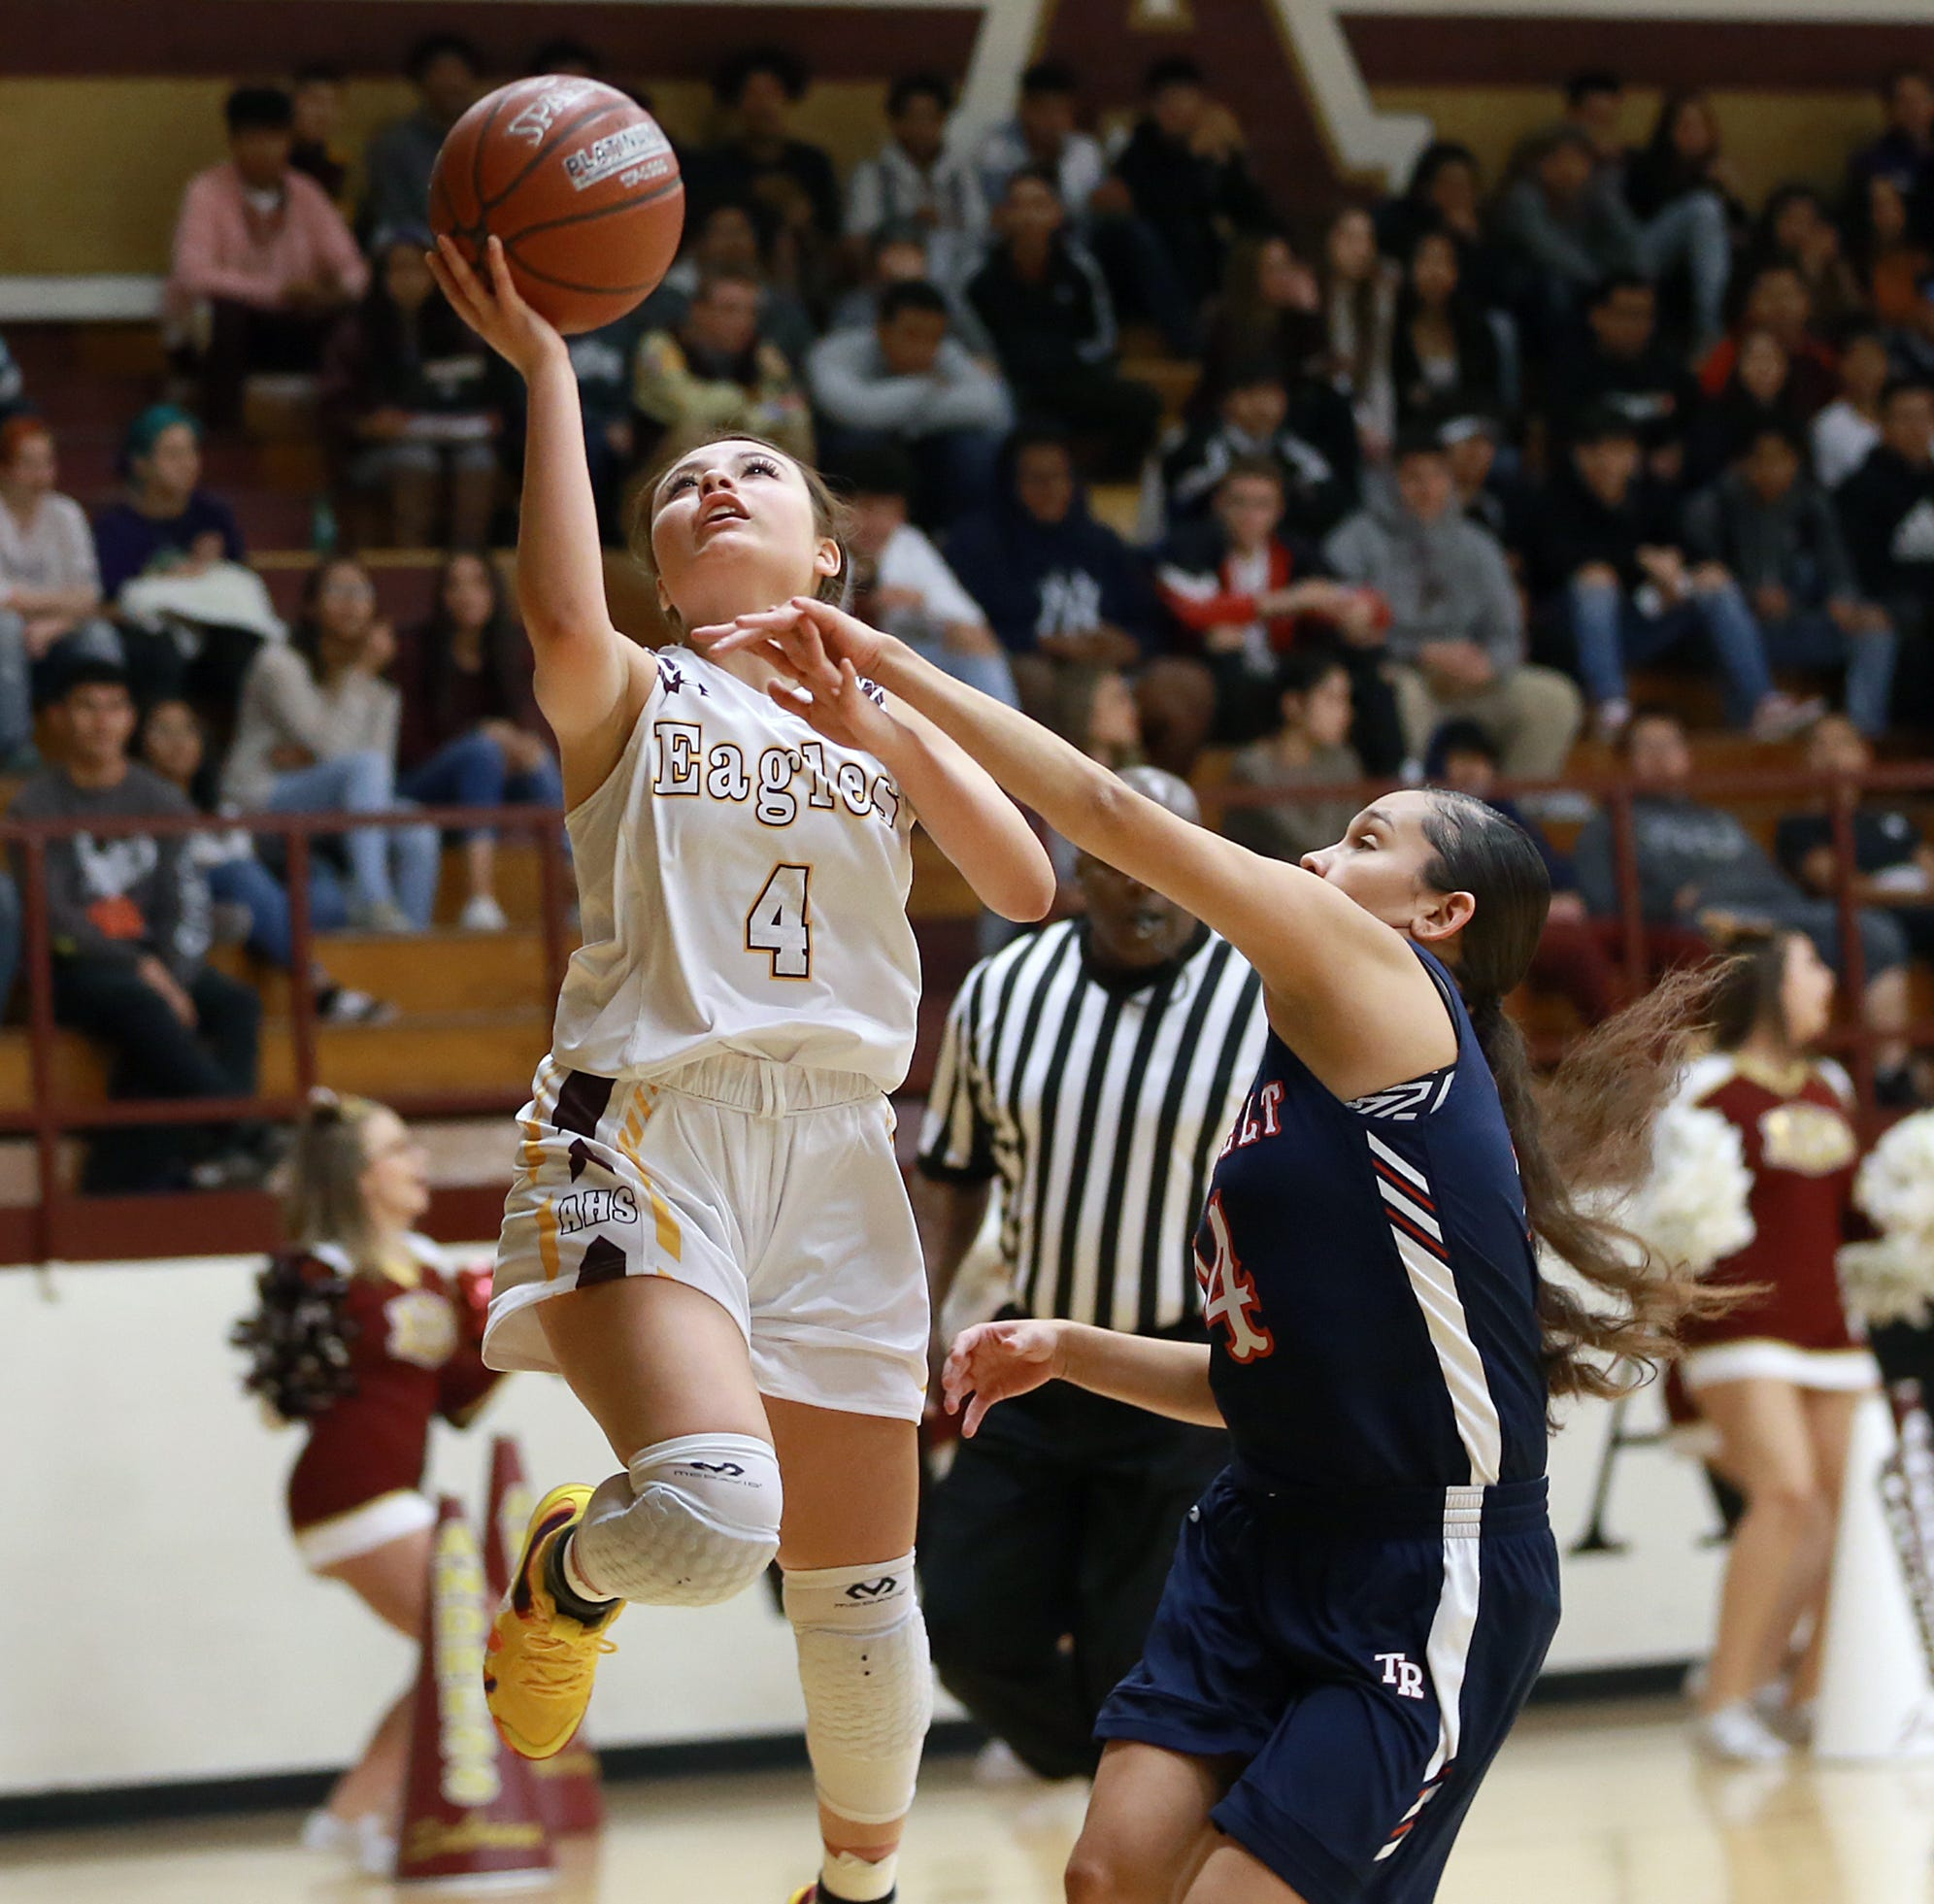 Andress destroys San Antonio Roosevelt in the McDonald's Basketball Classic 54-20.